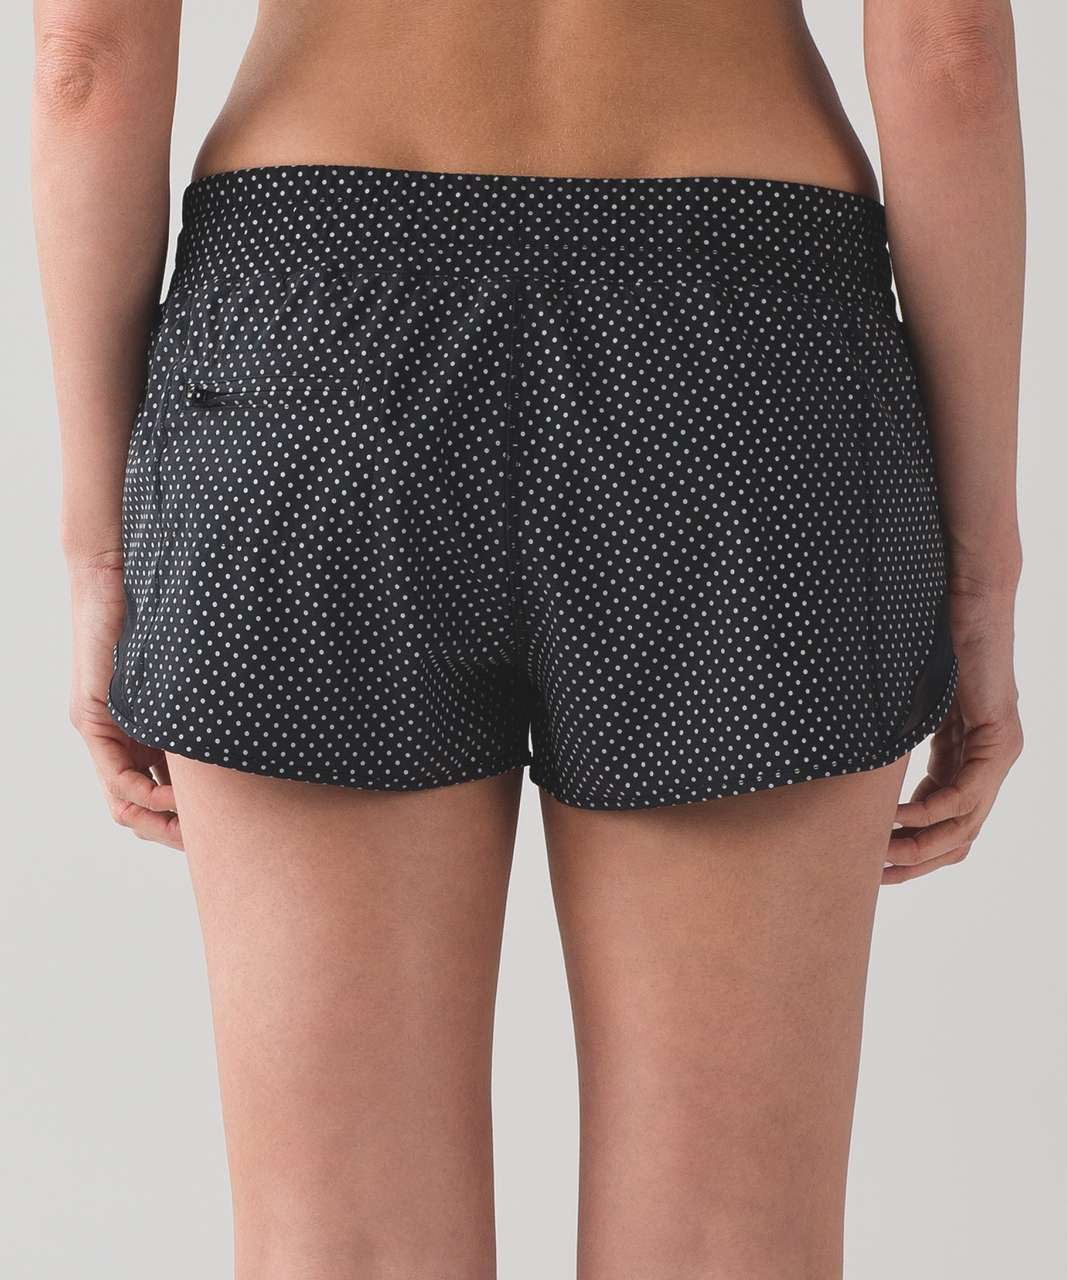 "Lululemon Hotty Hot Short (Shine Bright 2.5"") - Reflective Polka Dot Silver / Black"